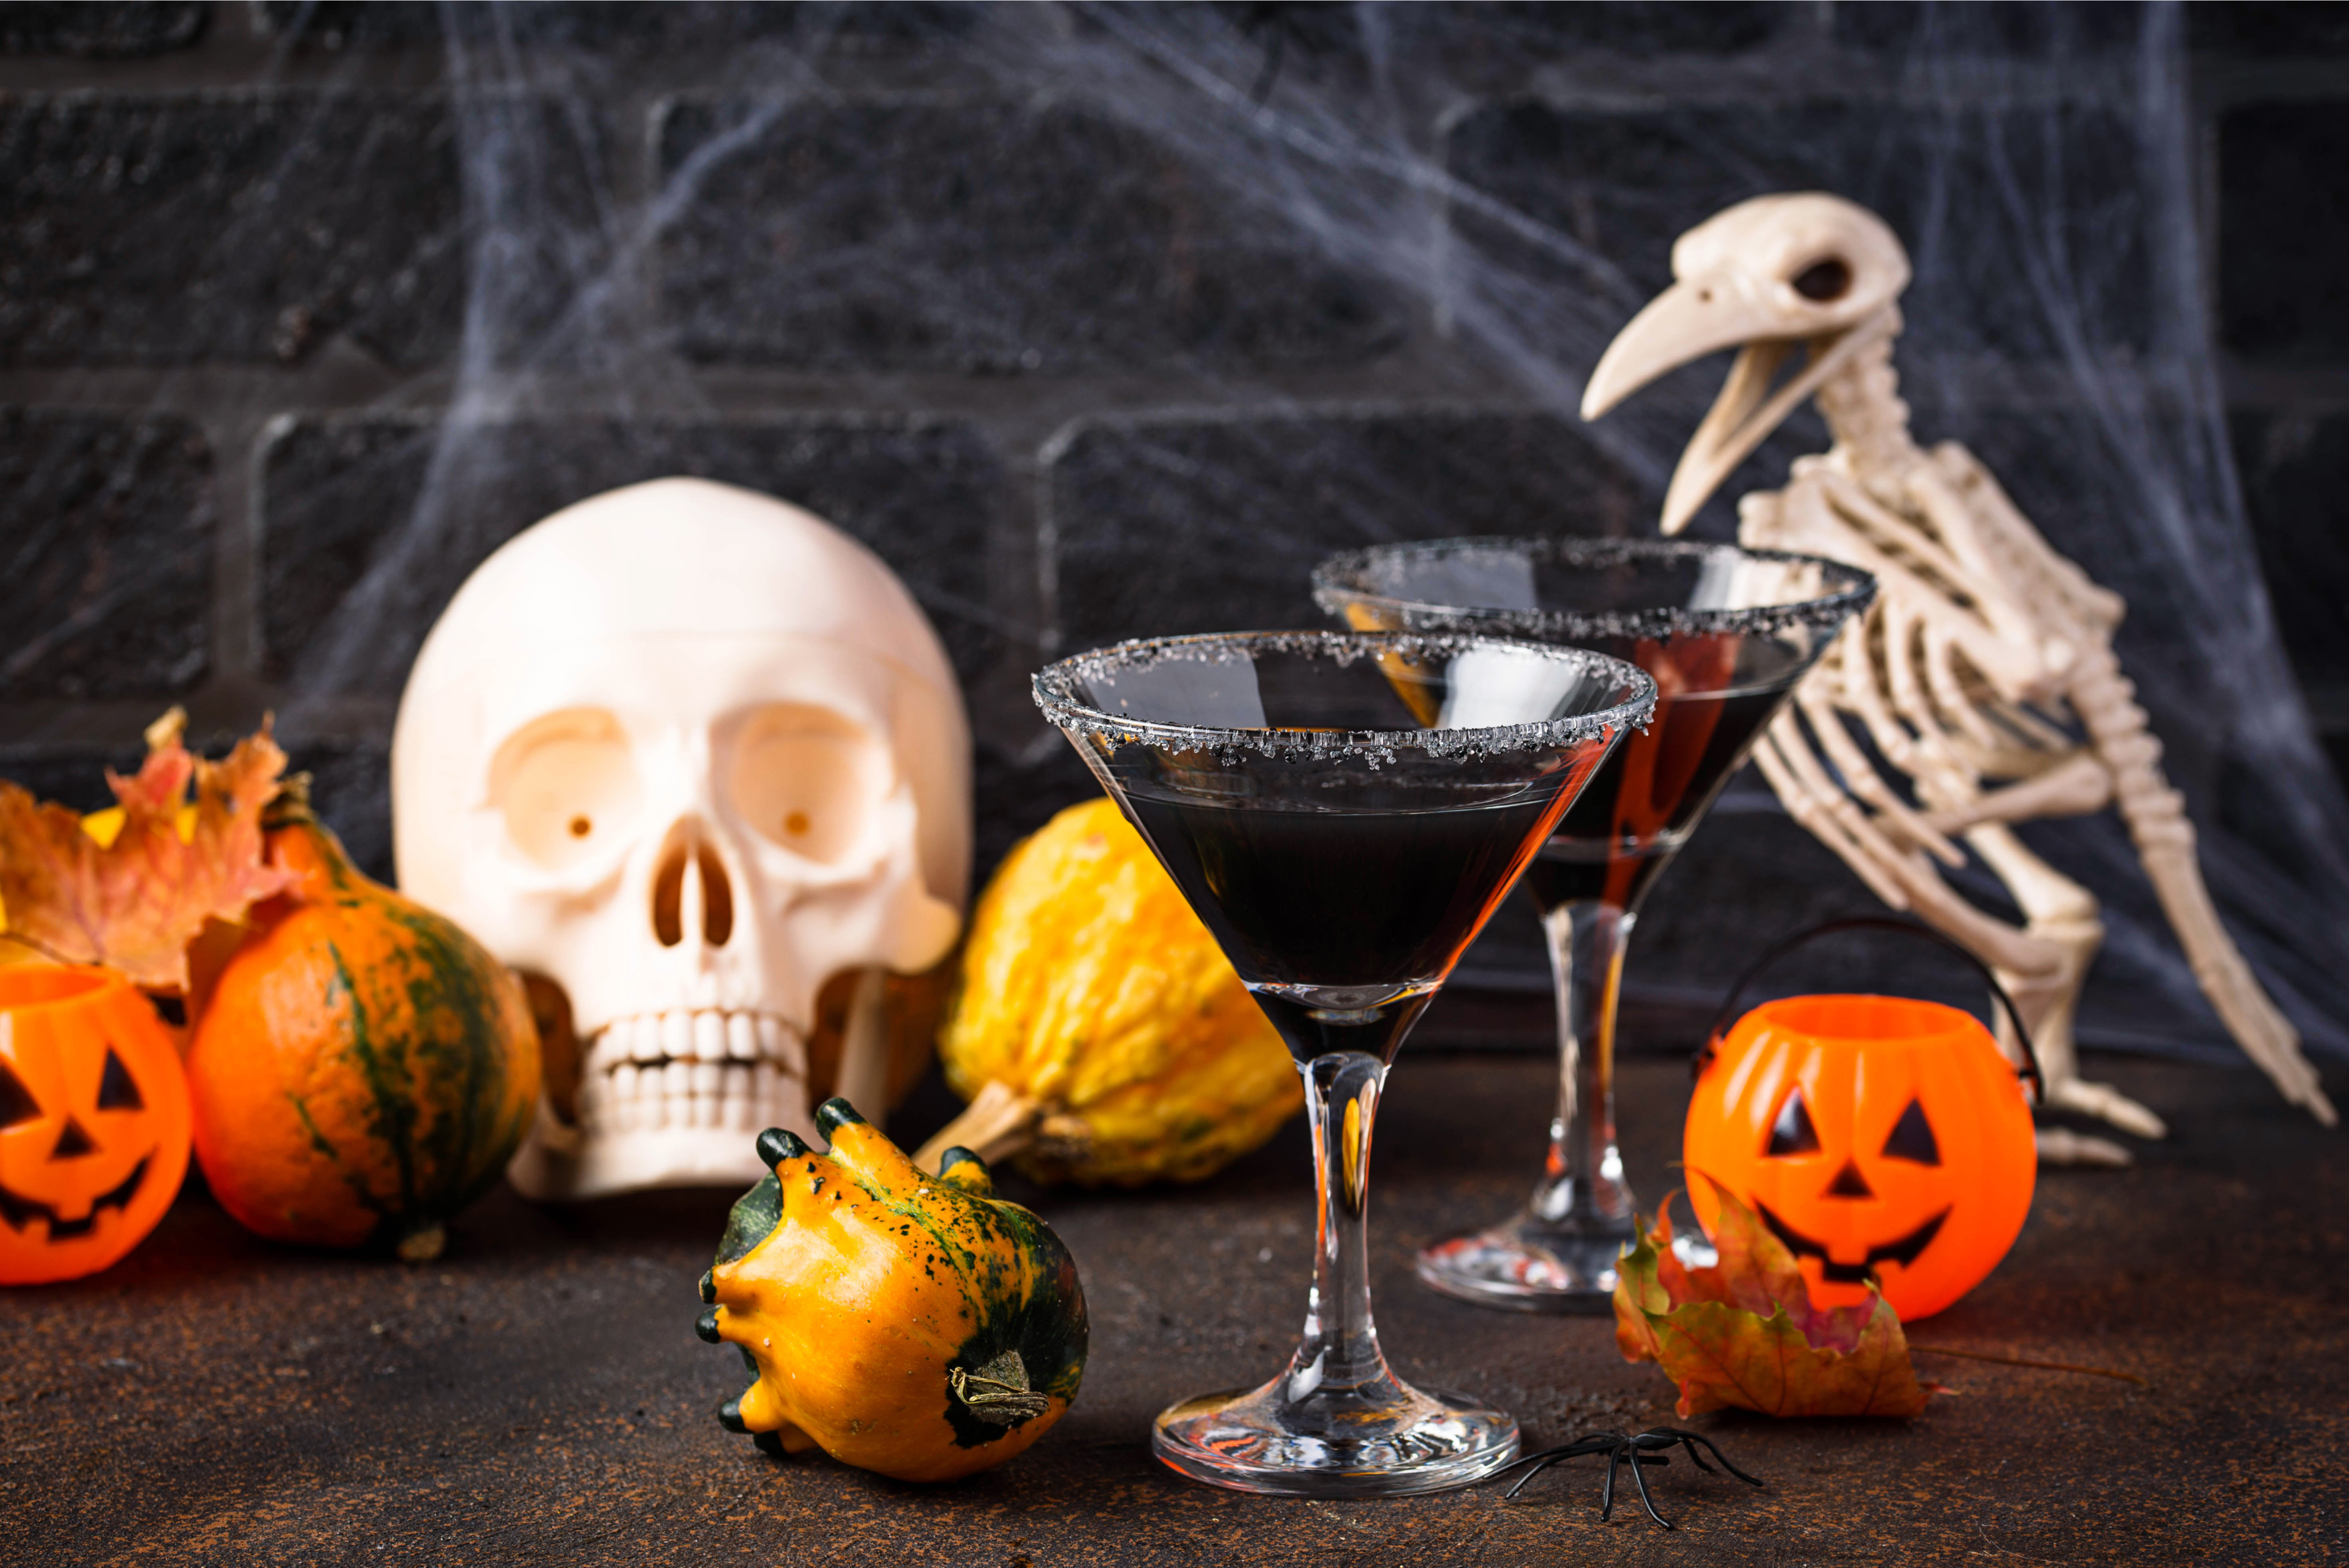 A Halloween display, with plastic jack o' lanterns, gourds, a bird skeleton, a skull, and two martini glasses filled with a dark liquid.